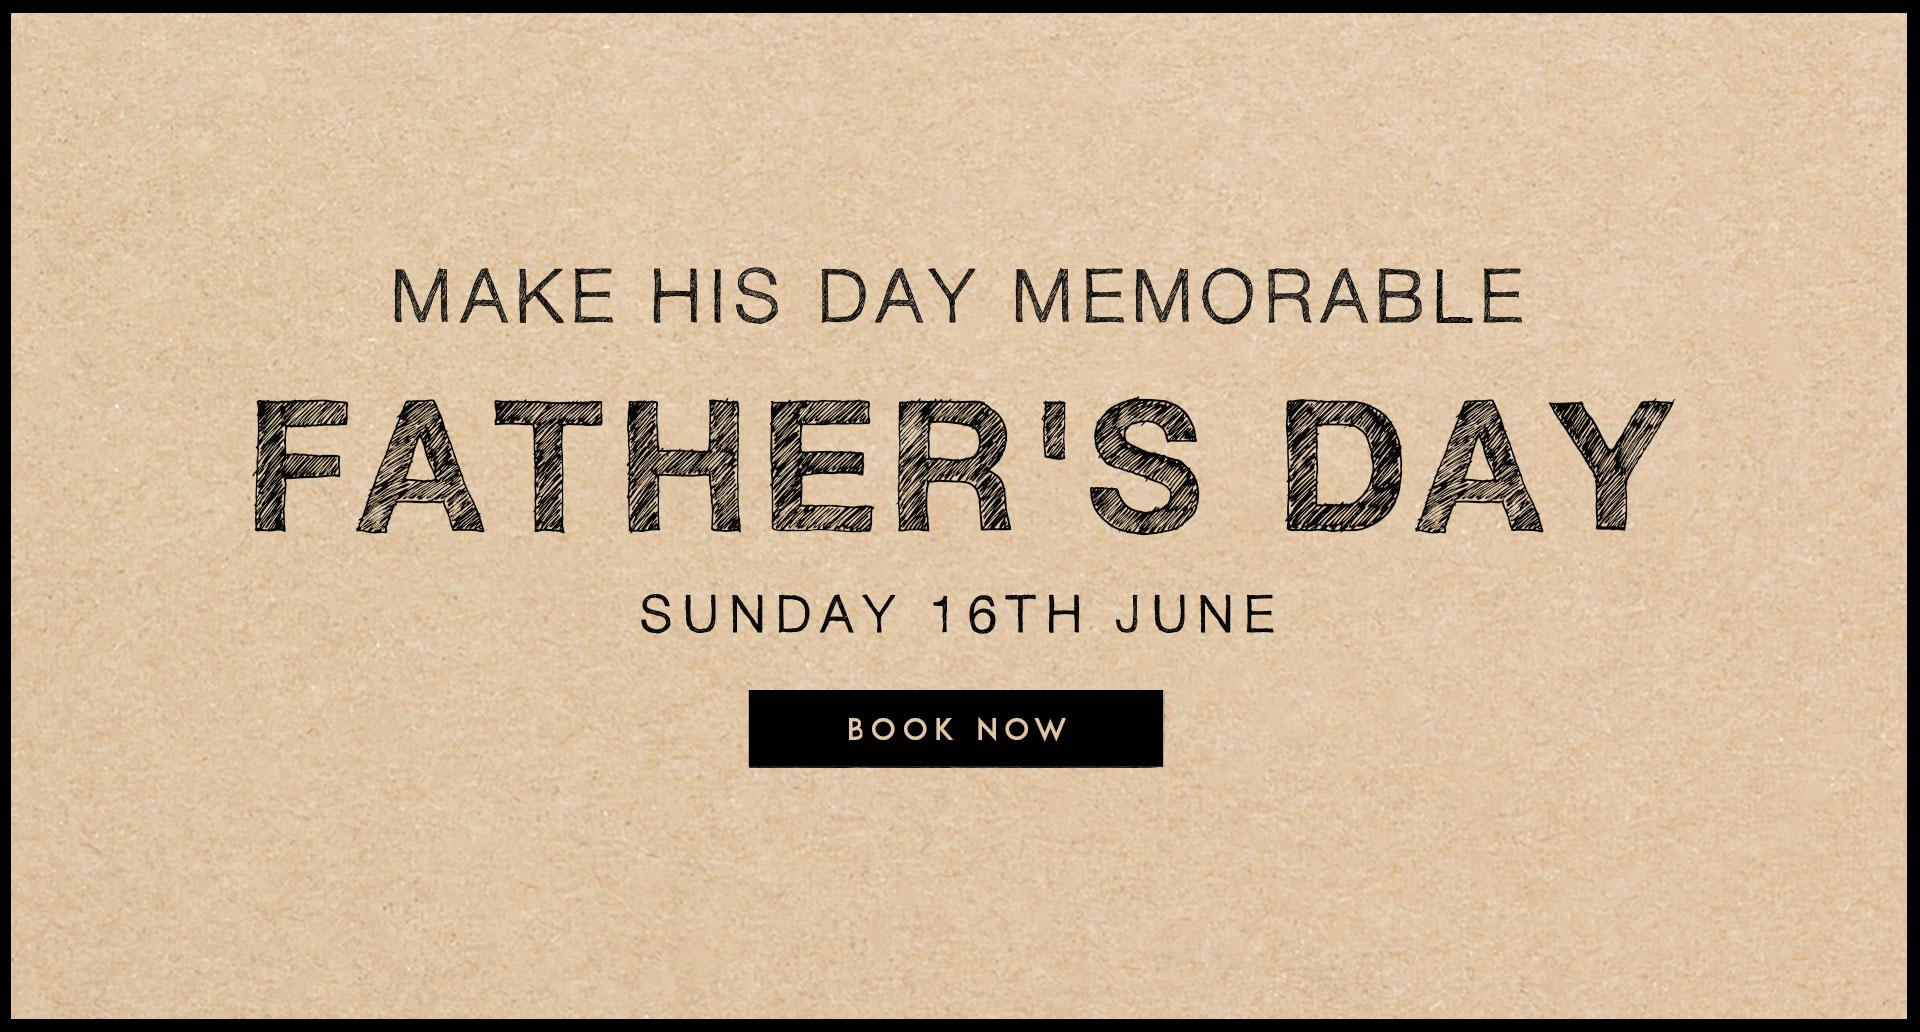 Fathers Day at The Royal Oak